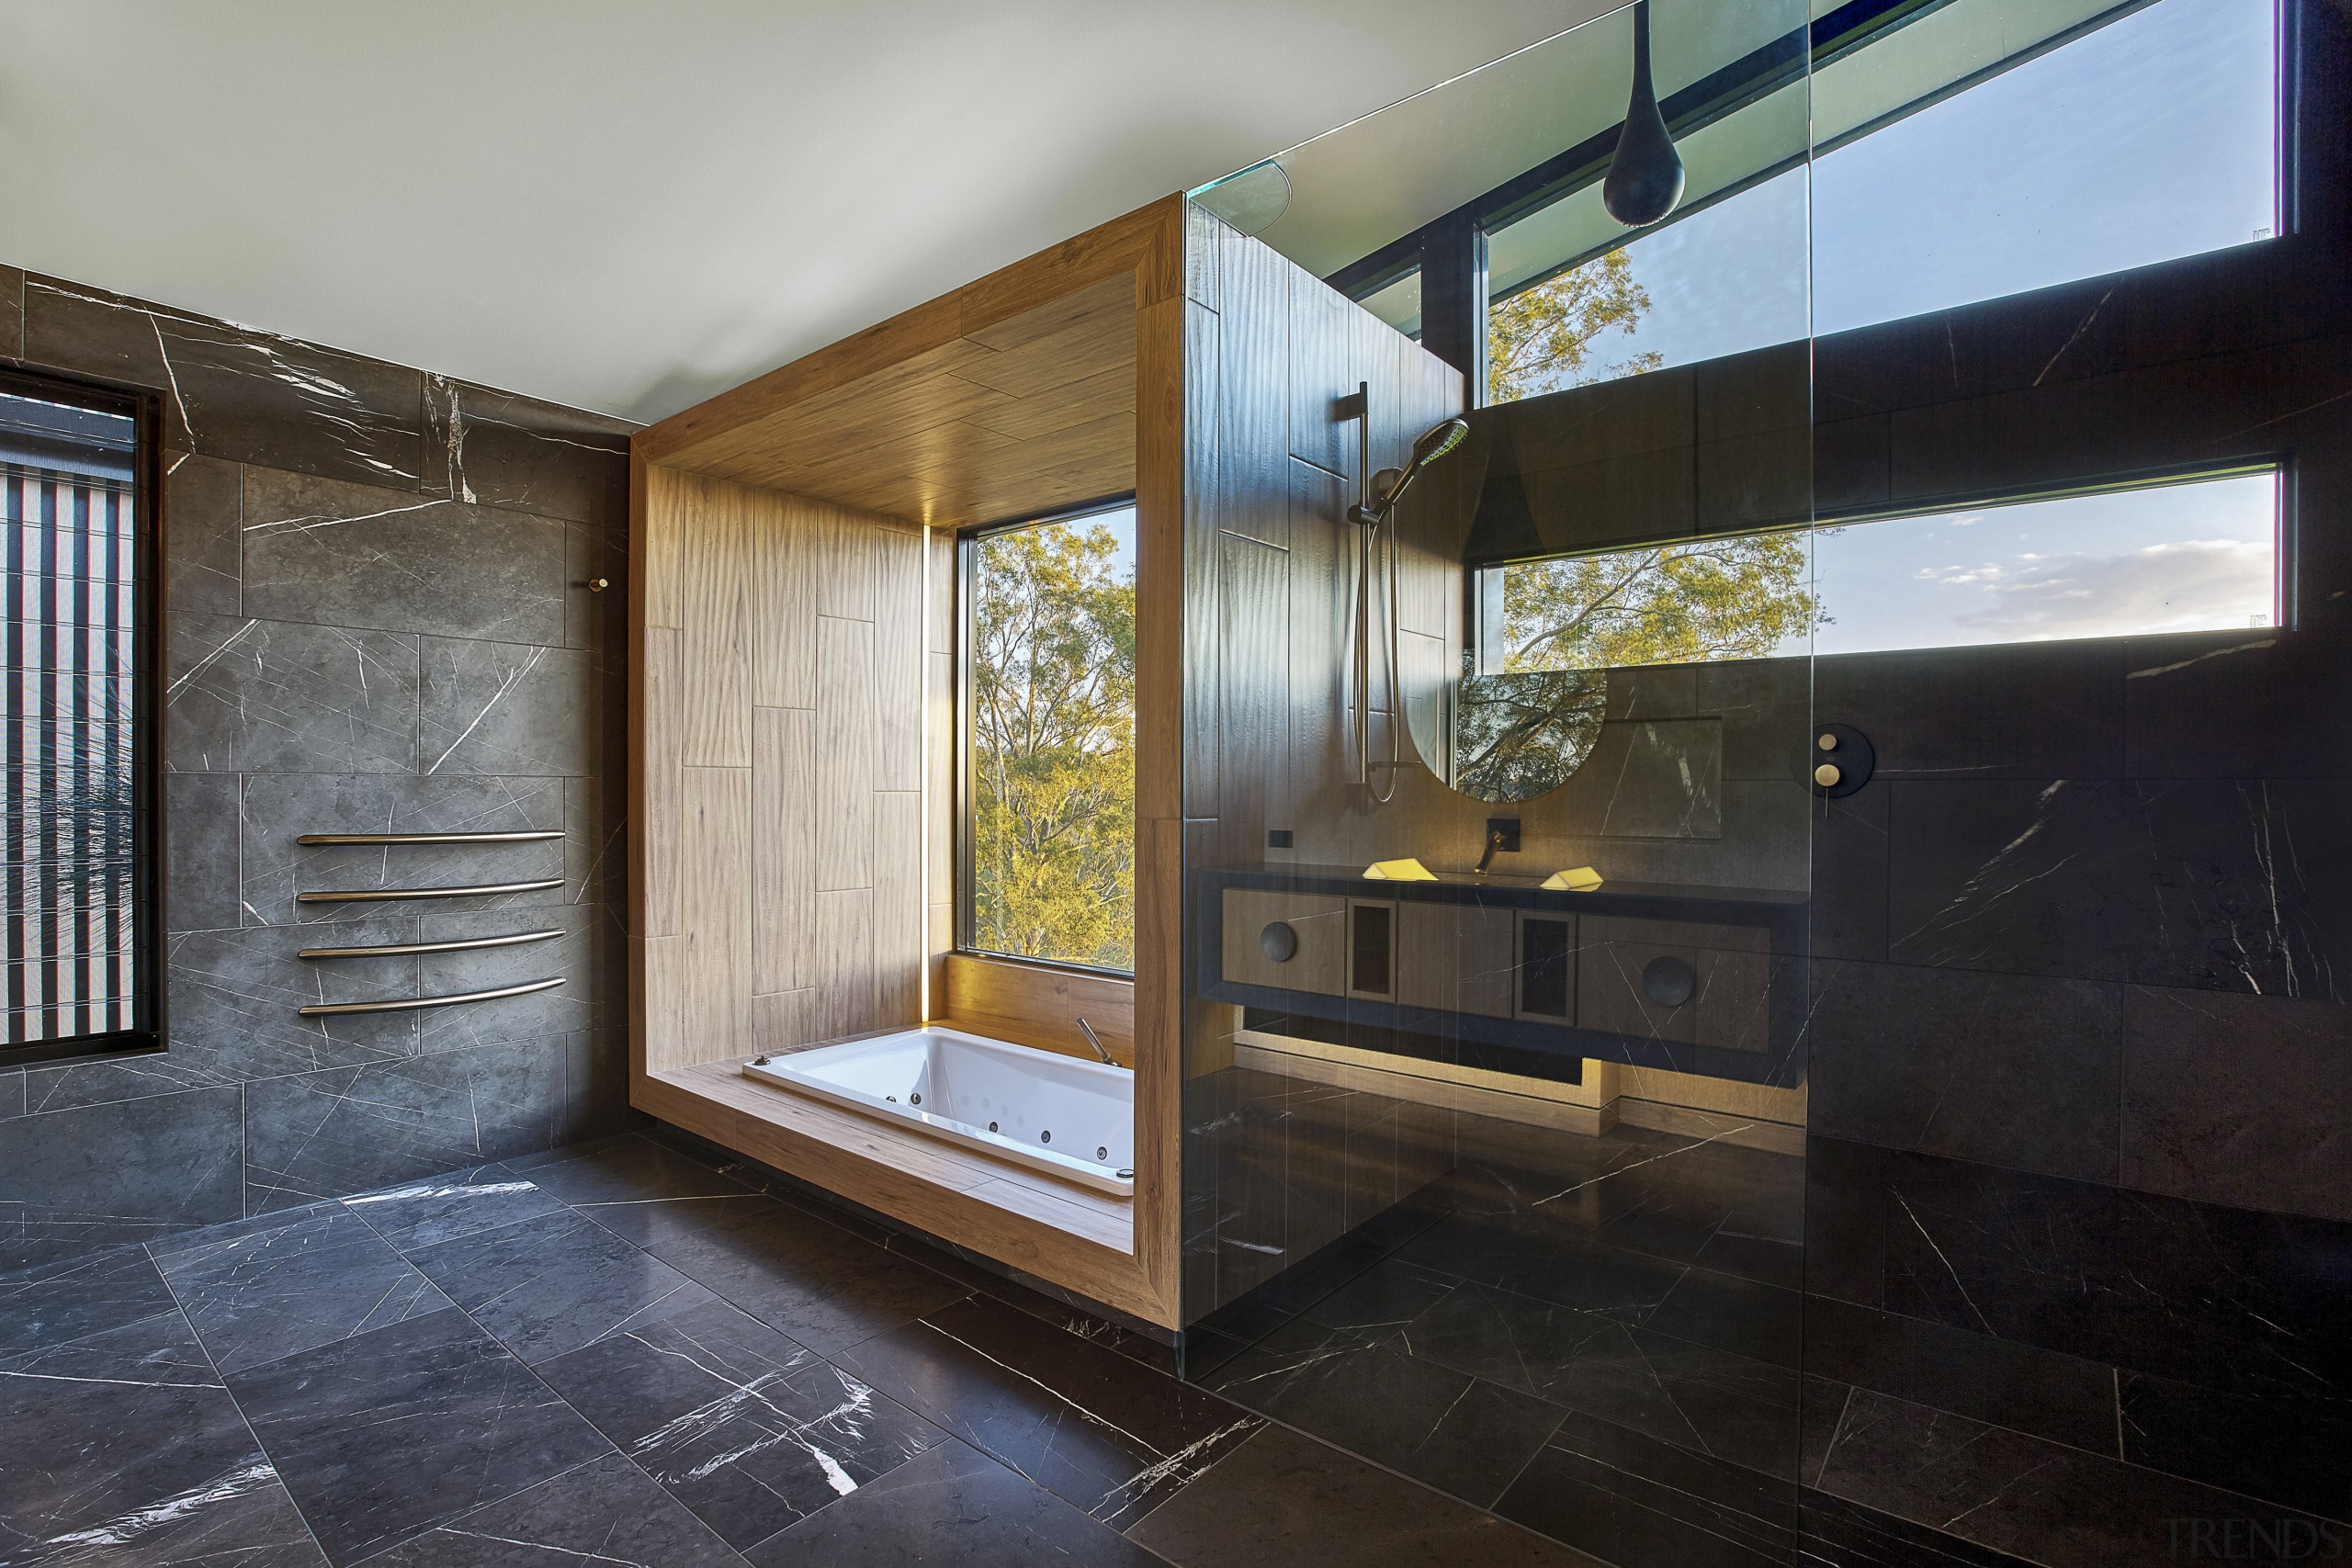 The tub surround in this bathroom calls to architecture, ceiling, house, interior design, real estate, black, gray